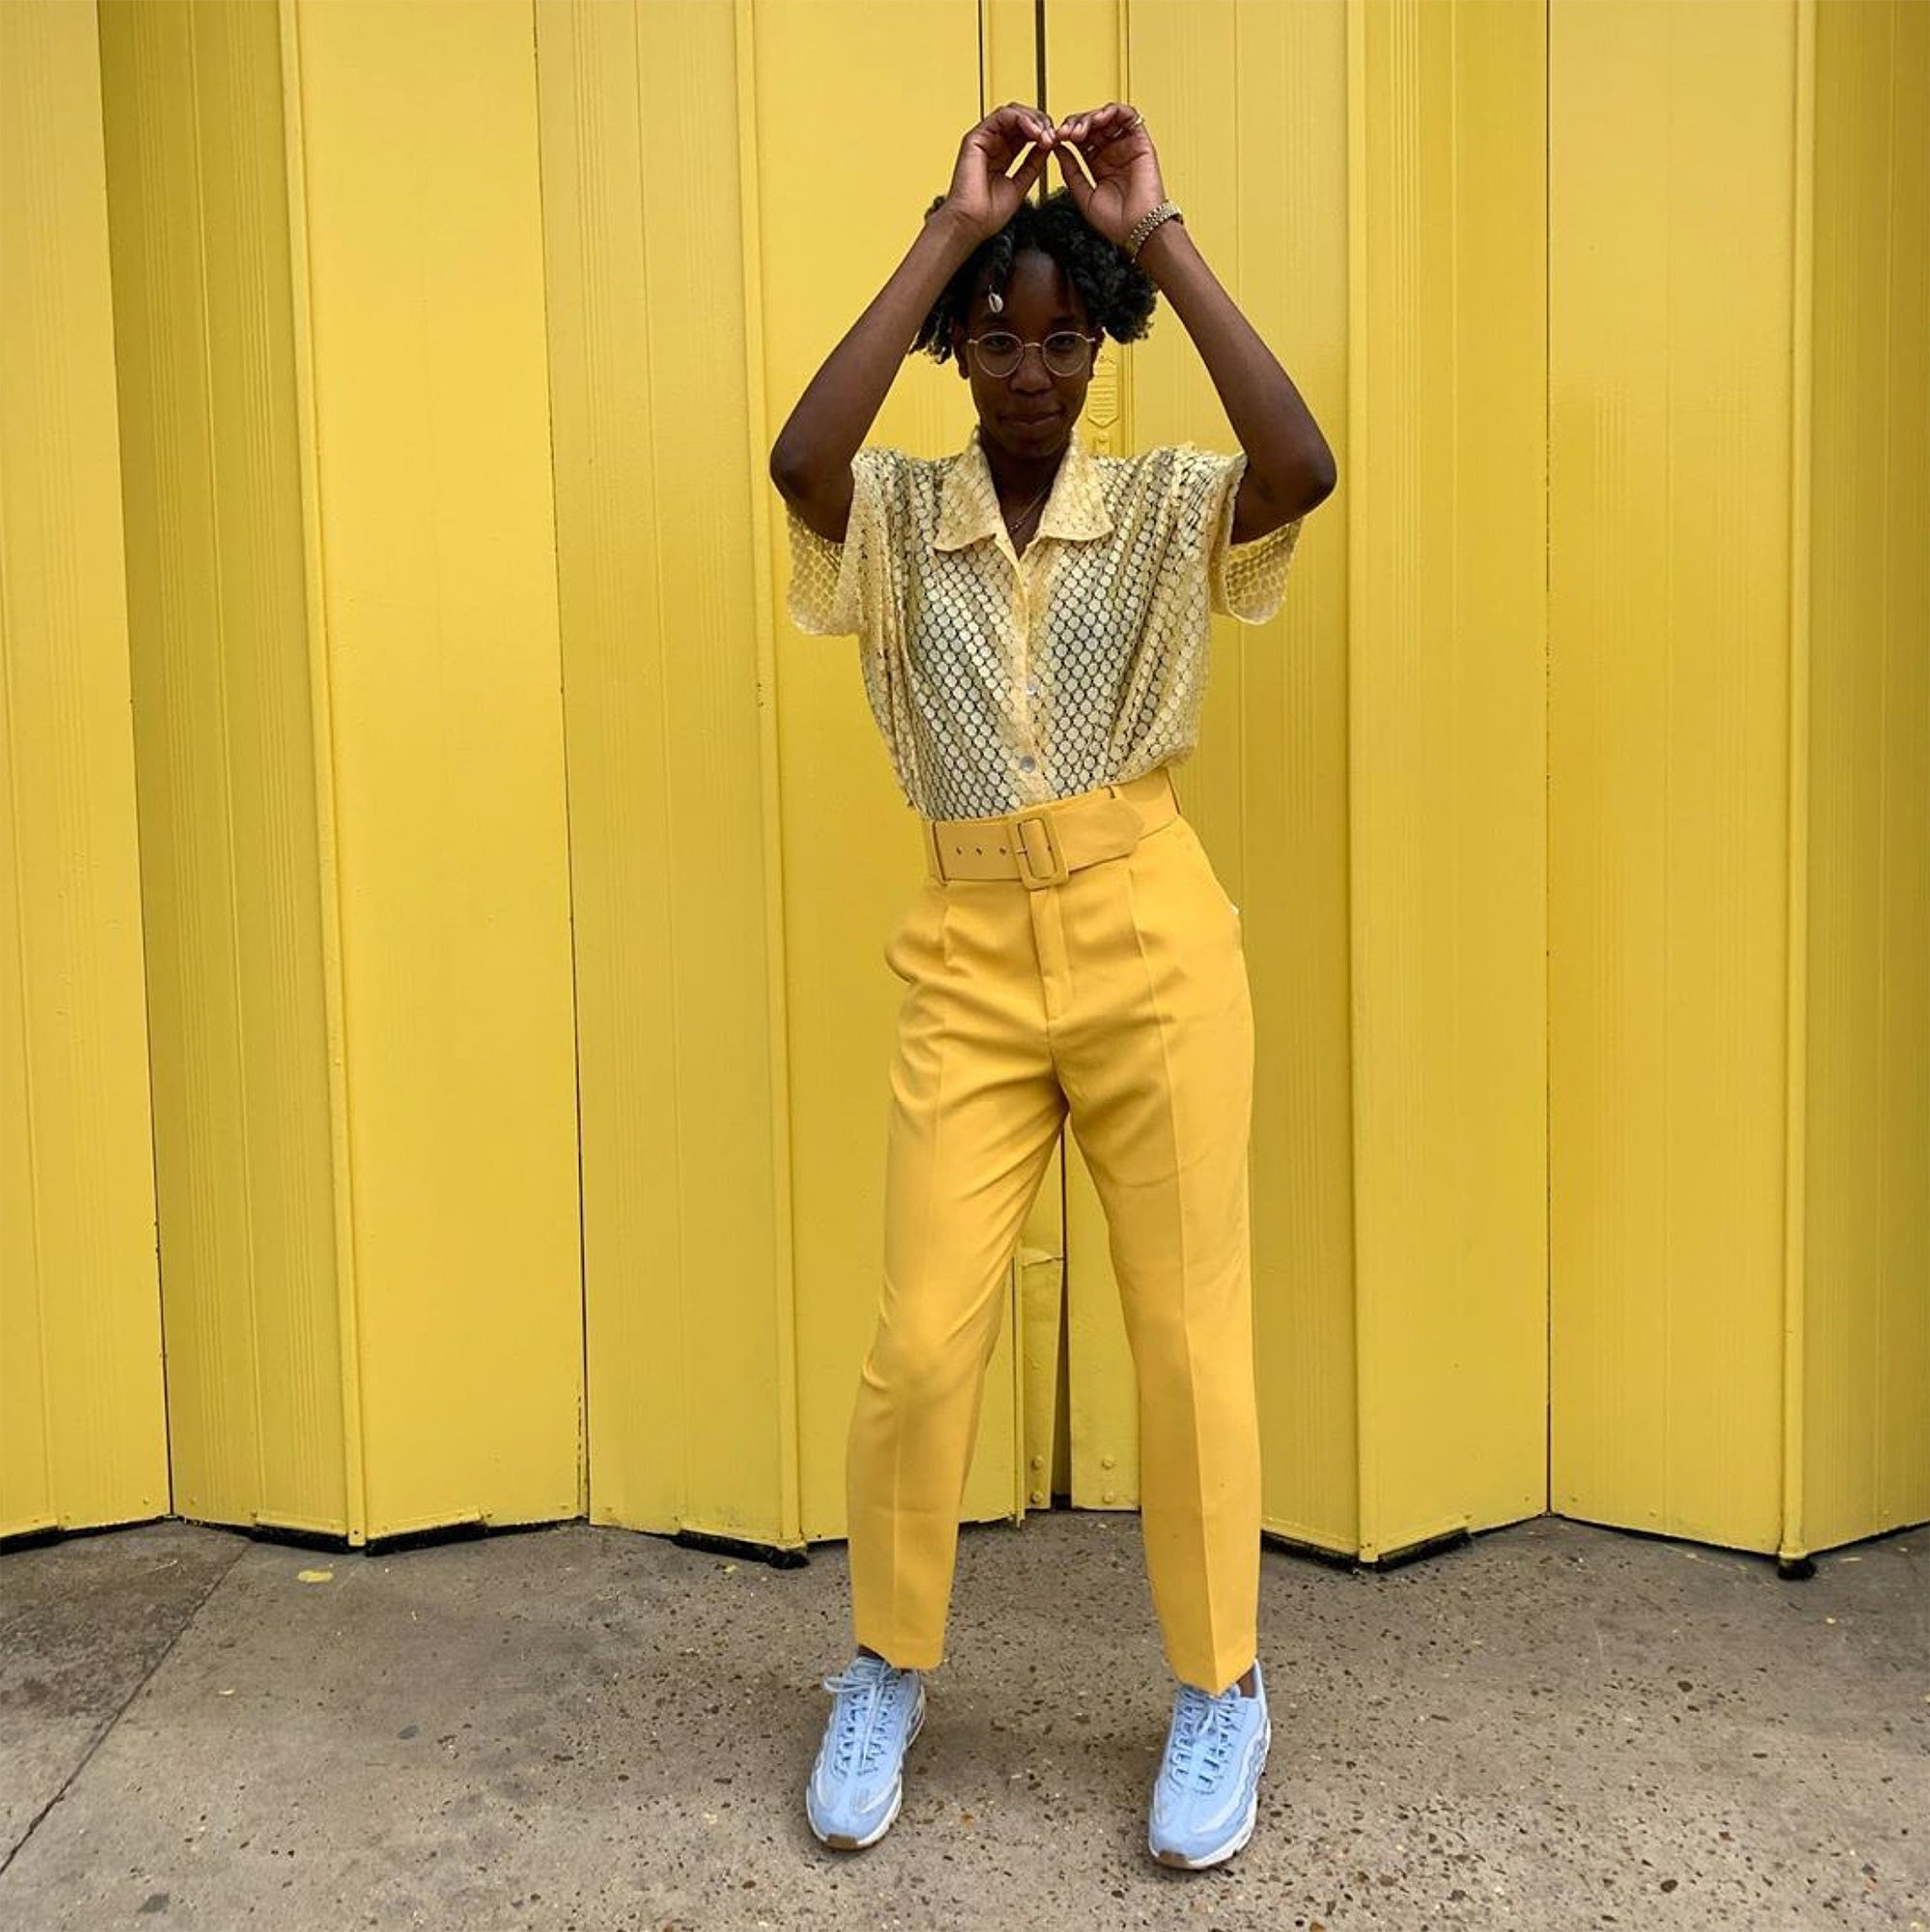 These People Prove That Butch & Tomboy Fashion Is Anything But Stereotypical